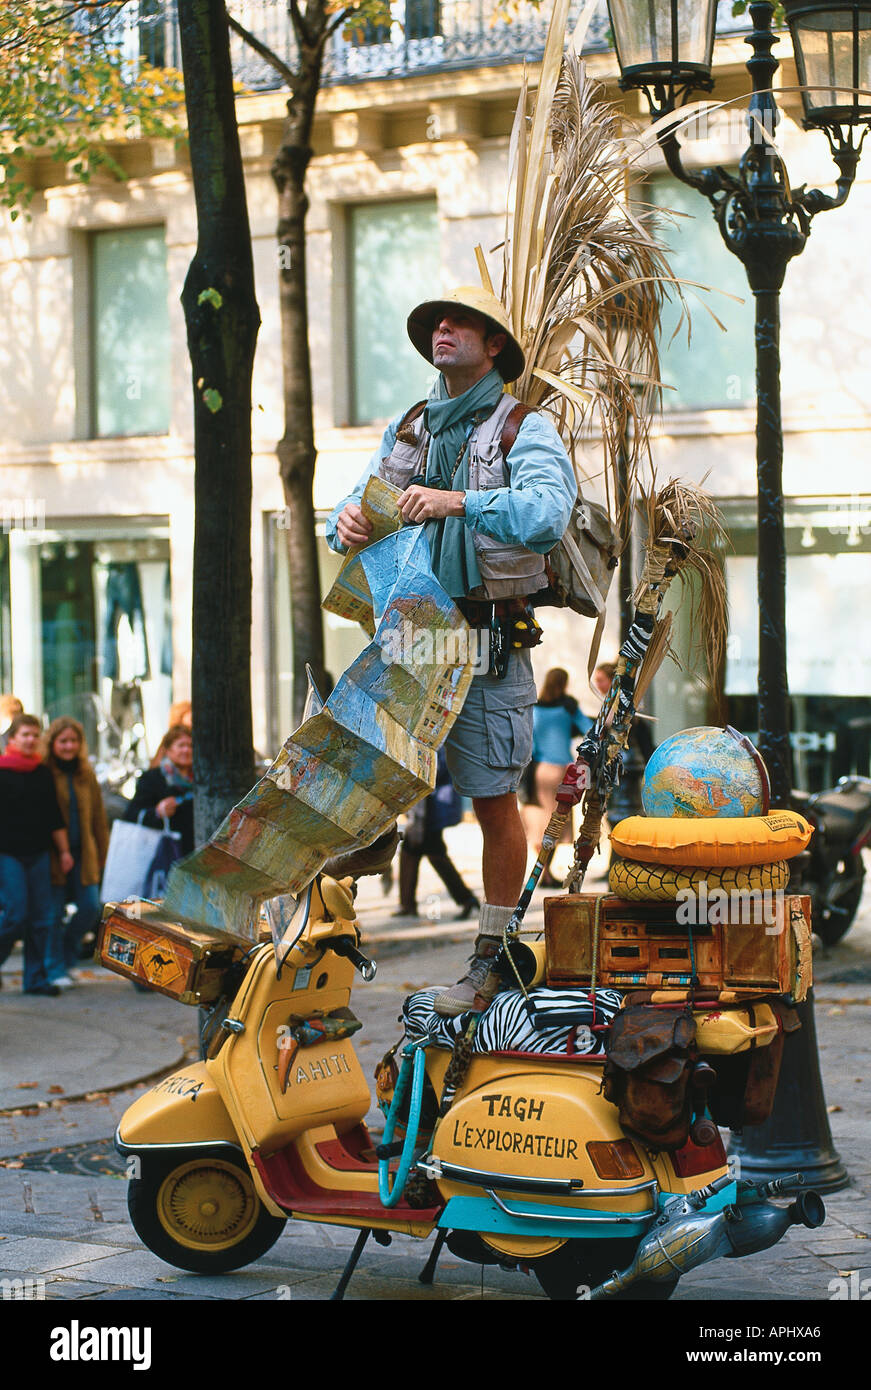 Place de la Sorbonne Paris France A mime artist dressed as an explorer holding a map moped in foreground world globe - Stock Image